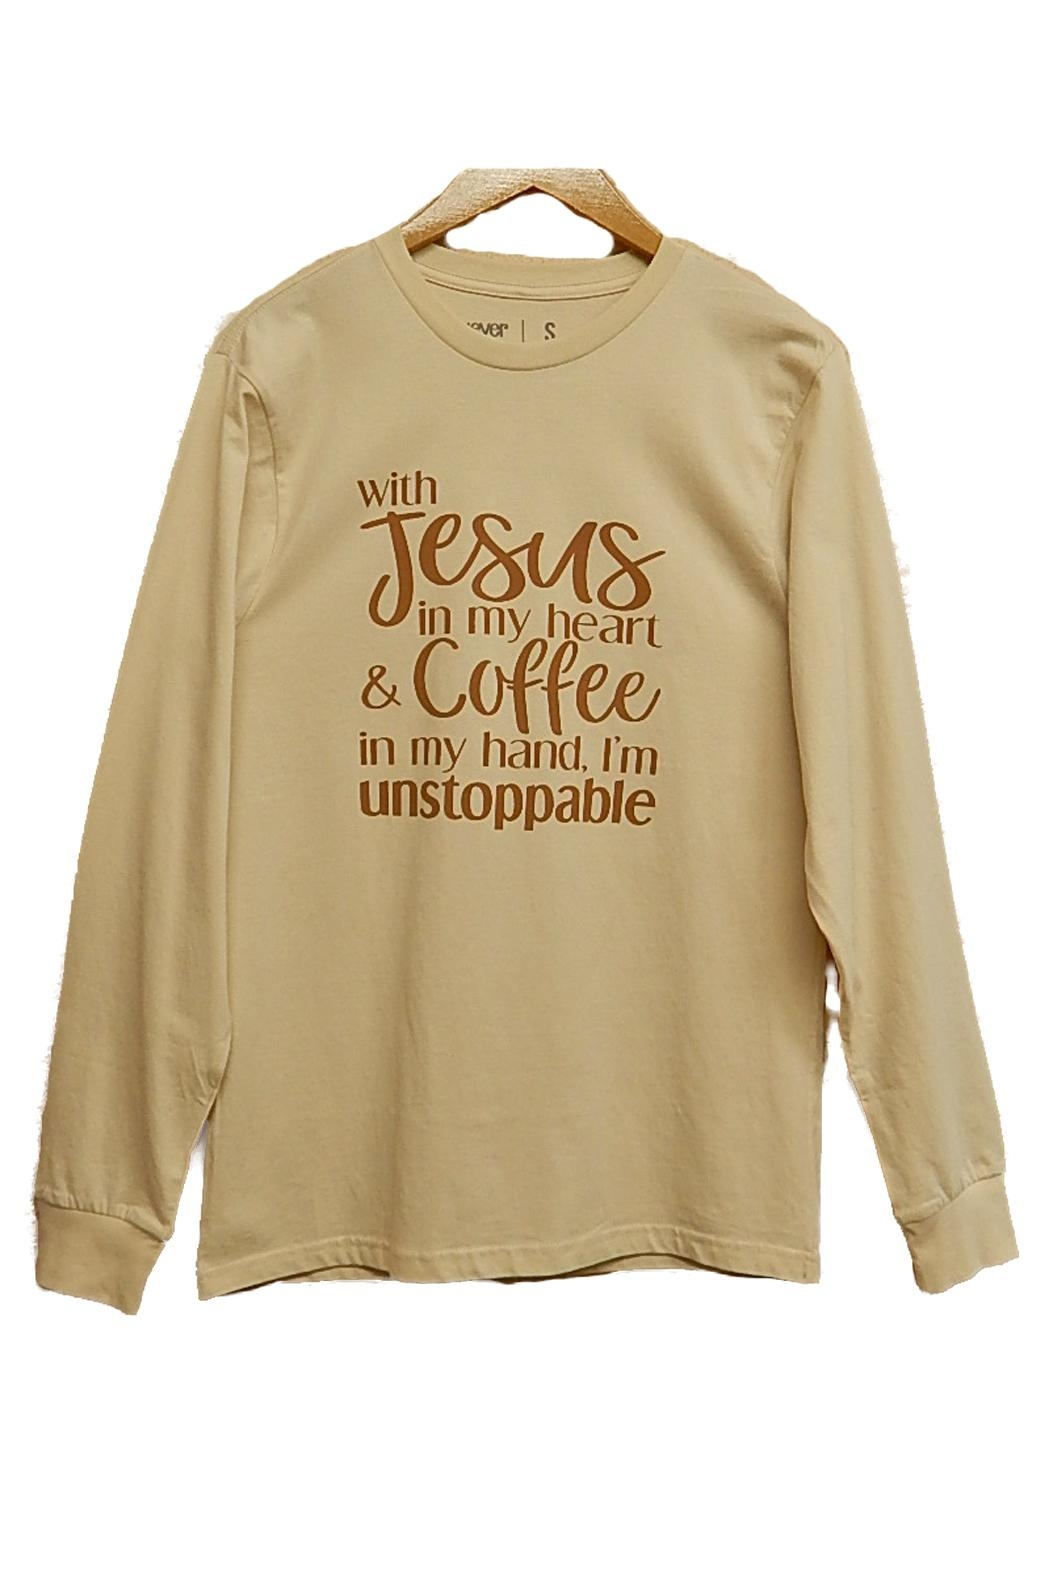 Never Lose Hope Designs Unstoppable Top - Front Cropped Image